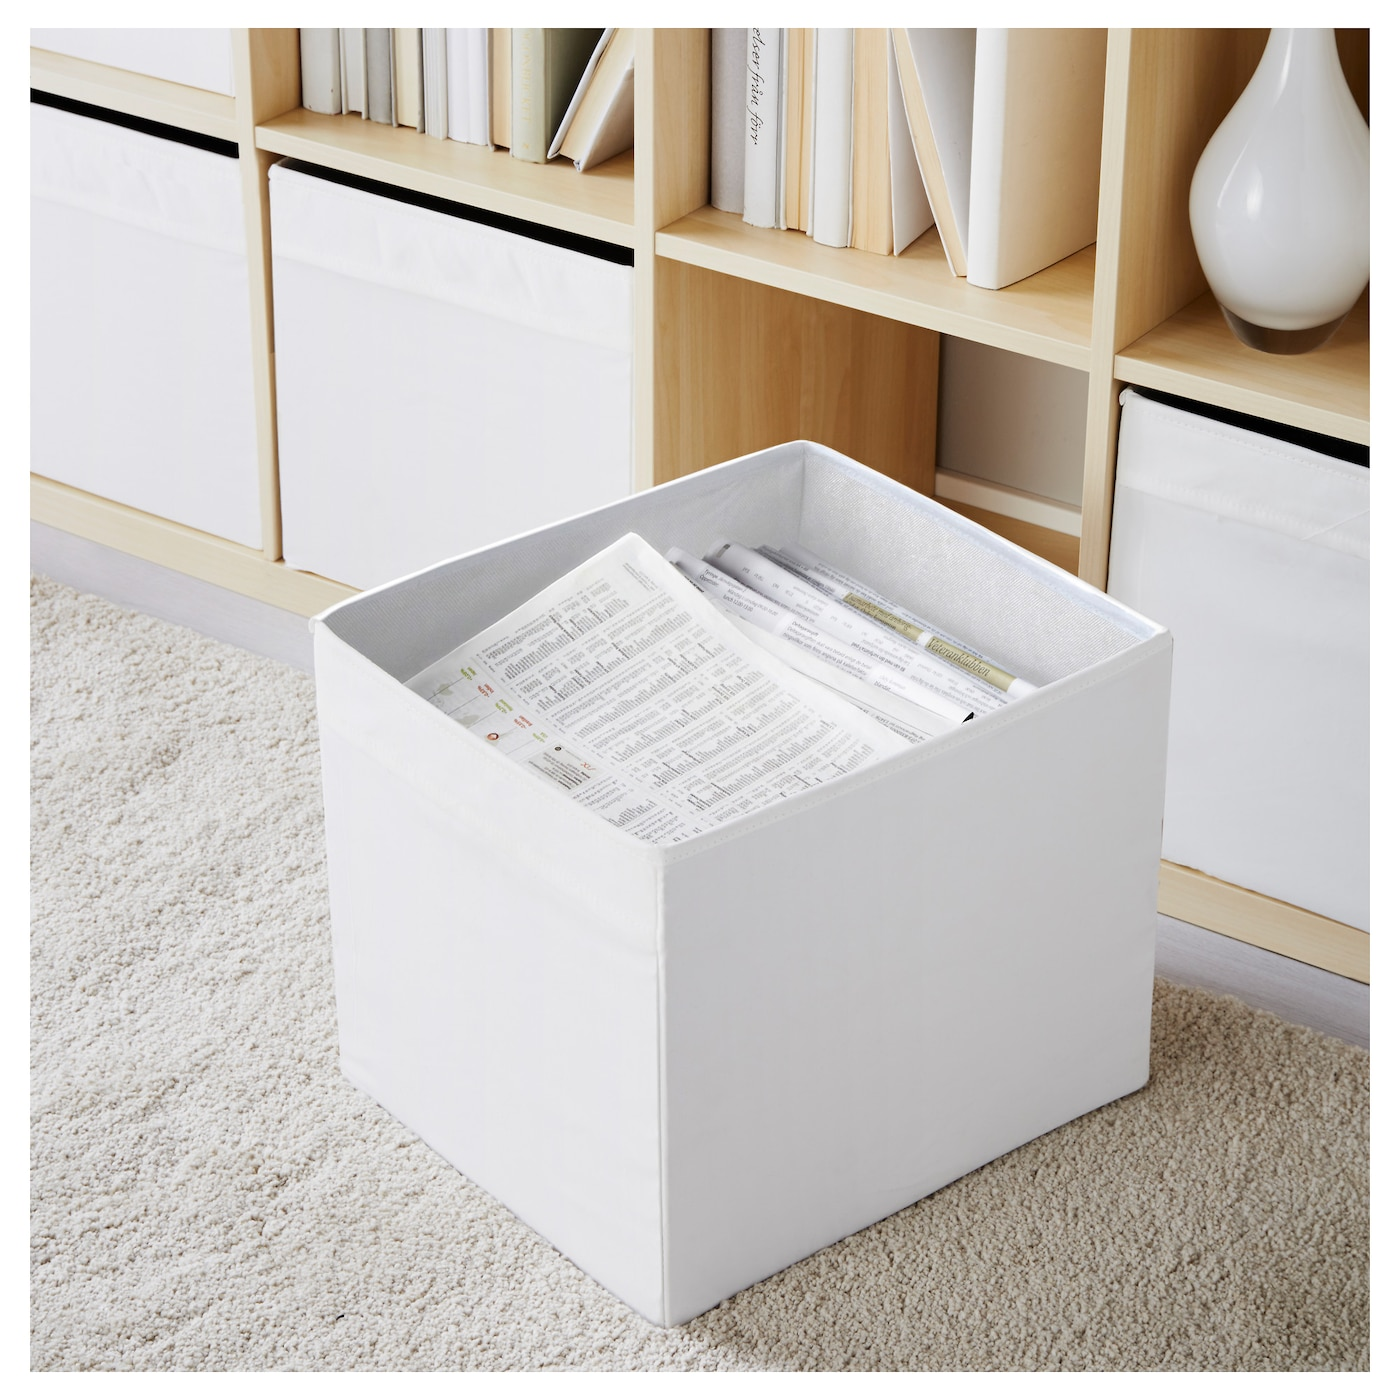 dr na rangement tissu blanc 33x38x33 cm ikea. Black Bedroom Furniture Sets. Home Design Ideas